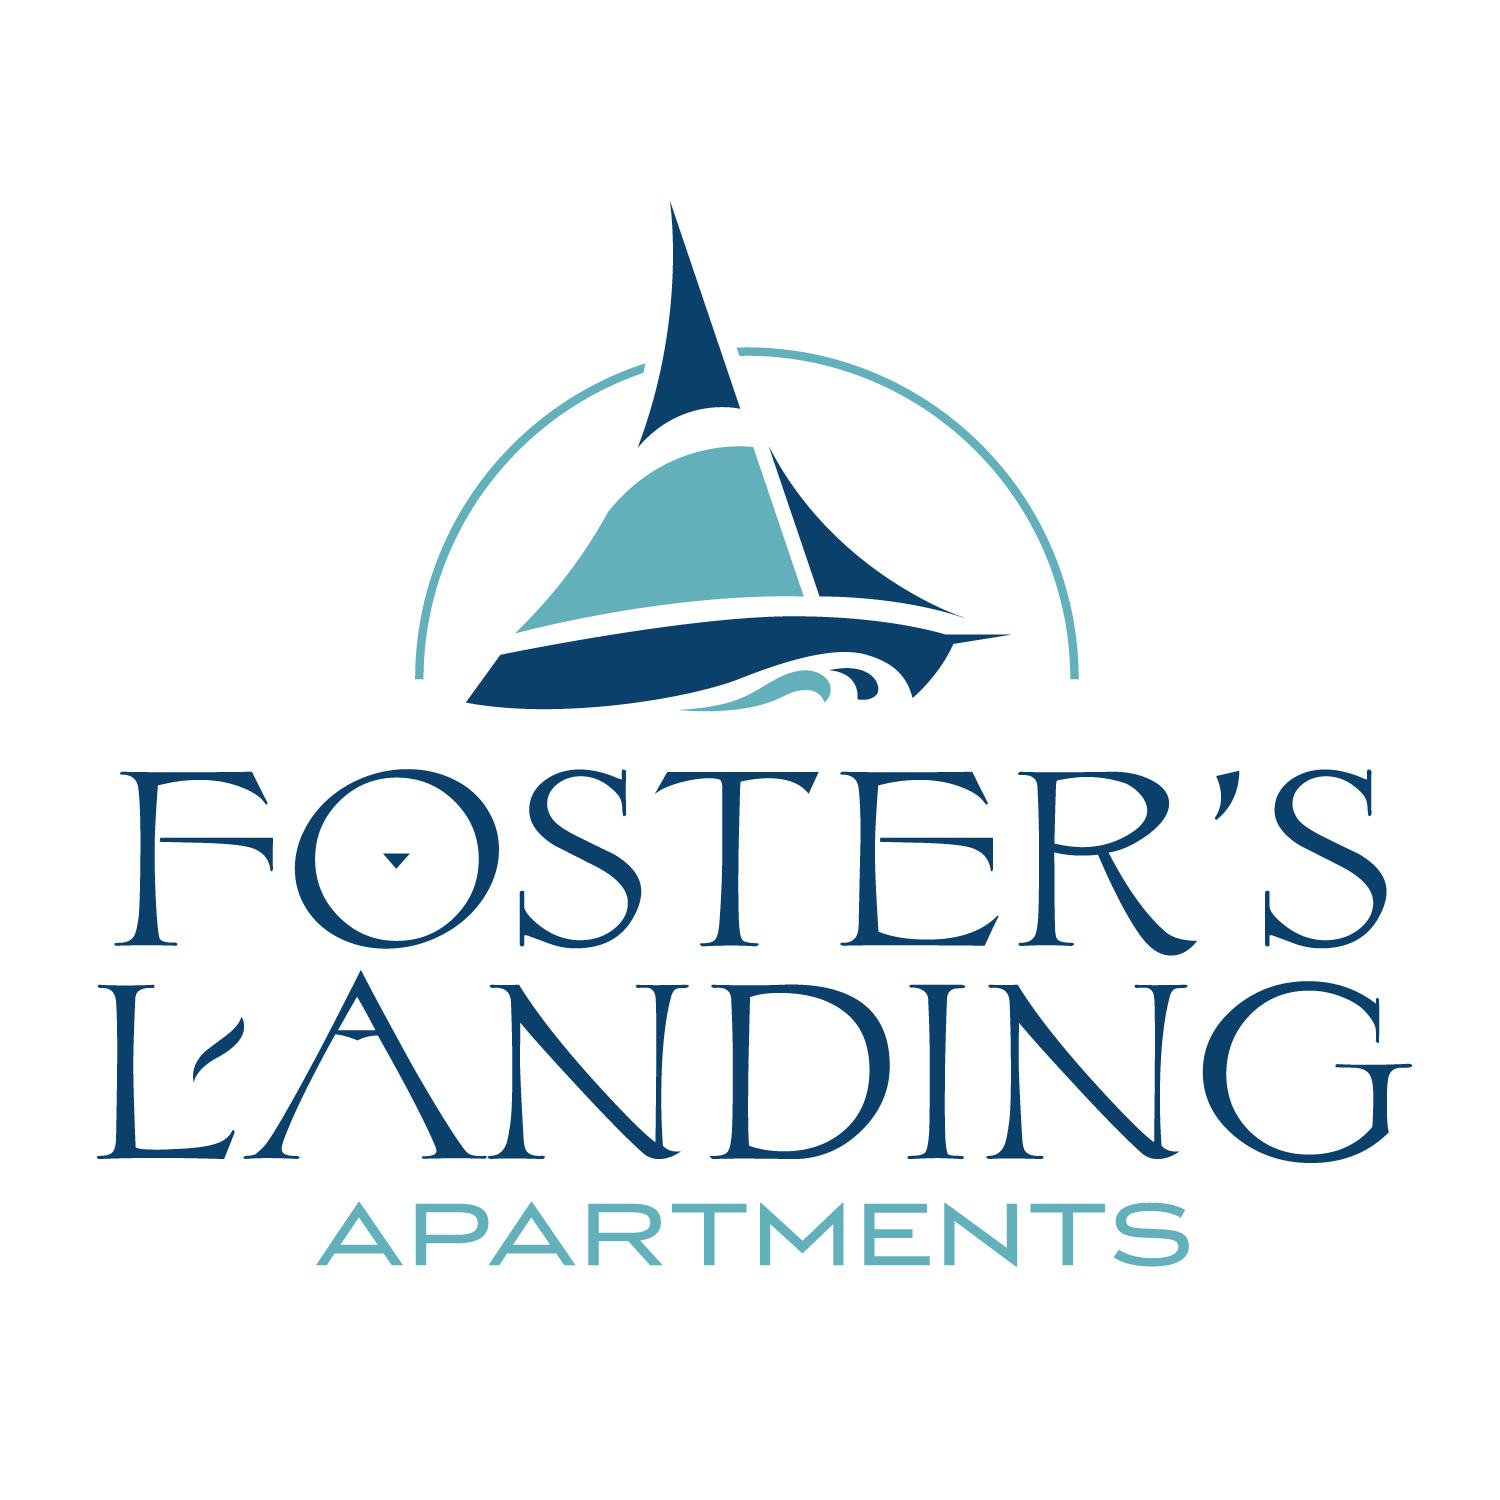 Foster's Landing Apartments